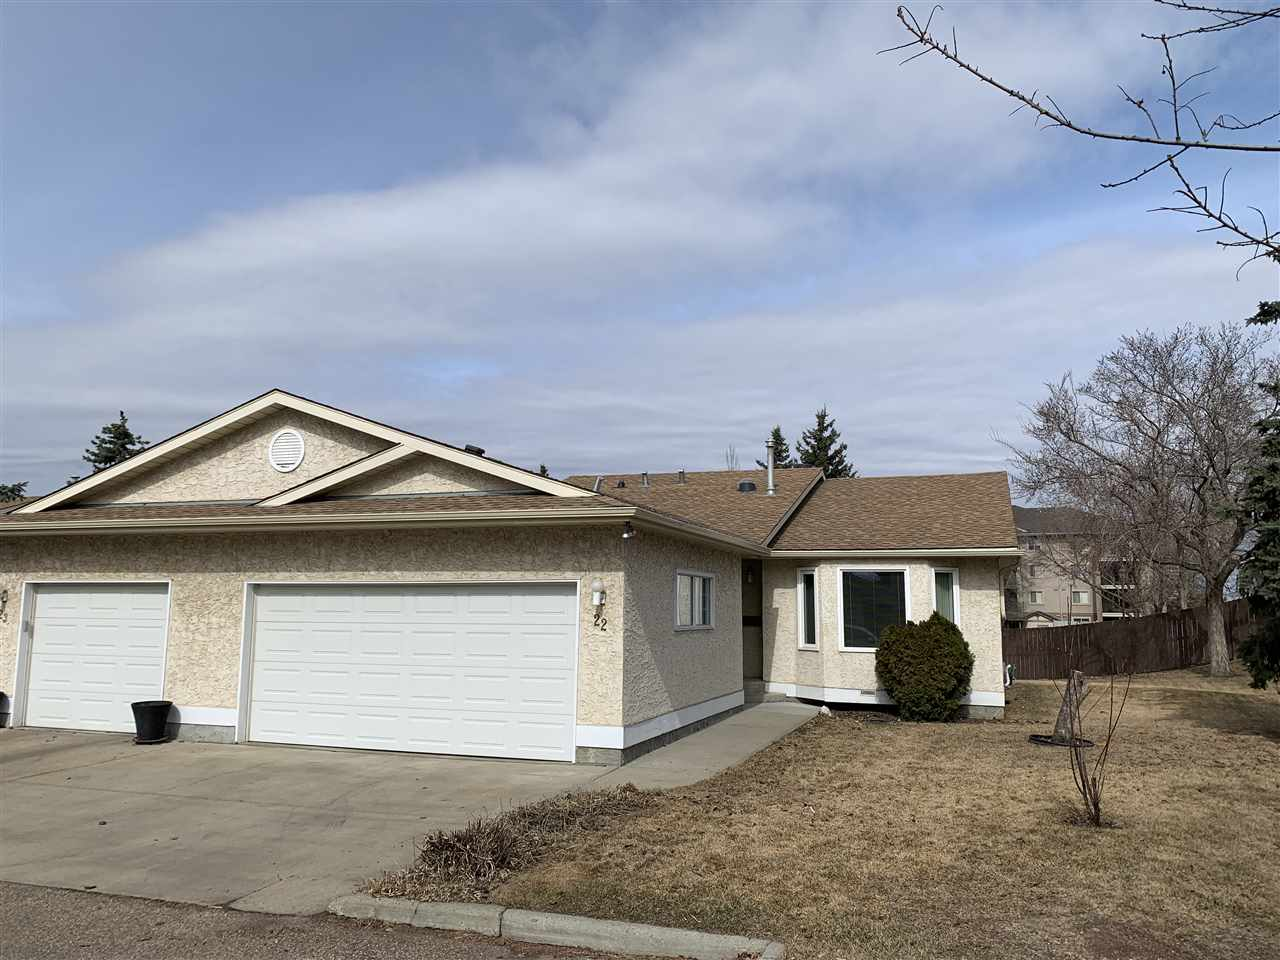 Wonderful 1,342 sqft sqft  End unit ~Half duplex bungalow nestled into the Adult  45+ CARRINGTON VILLAGE in Summmerlea's West Edm community. Fully developed 2+1 bdrm 3 bath with Dbl attached garage! Wonderful open floor plan w/ vaulted ceilings. All rooms are spacious starting w/ front living rm w/a bay window with tons of natural light. The dining area is ideal to host dinner parties w/friends~ hopefully soon! Great functional eat-in kitchen w/ ample counter space& cabinetry Flex rm next to kitchen can be  larger dinette area or sitting rm w/ access deck/yard. The main floor is complete w/laundry, a 4 piece bathrm & 2 great sized bedrms, including the primary suite which features a W/I closet & a 3 piece ensuite. The FULLY fin basement has an open/huge rec room, 3rd bedroom, 4 piece bathroom, storage/hobby rm. Close to shopping, transit, parks/walking trails & WEM. Private yard along open treed space, Visitor parking & Social amenity building makes this home a perfect fit for the empty nester or retiree!